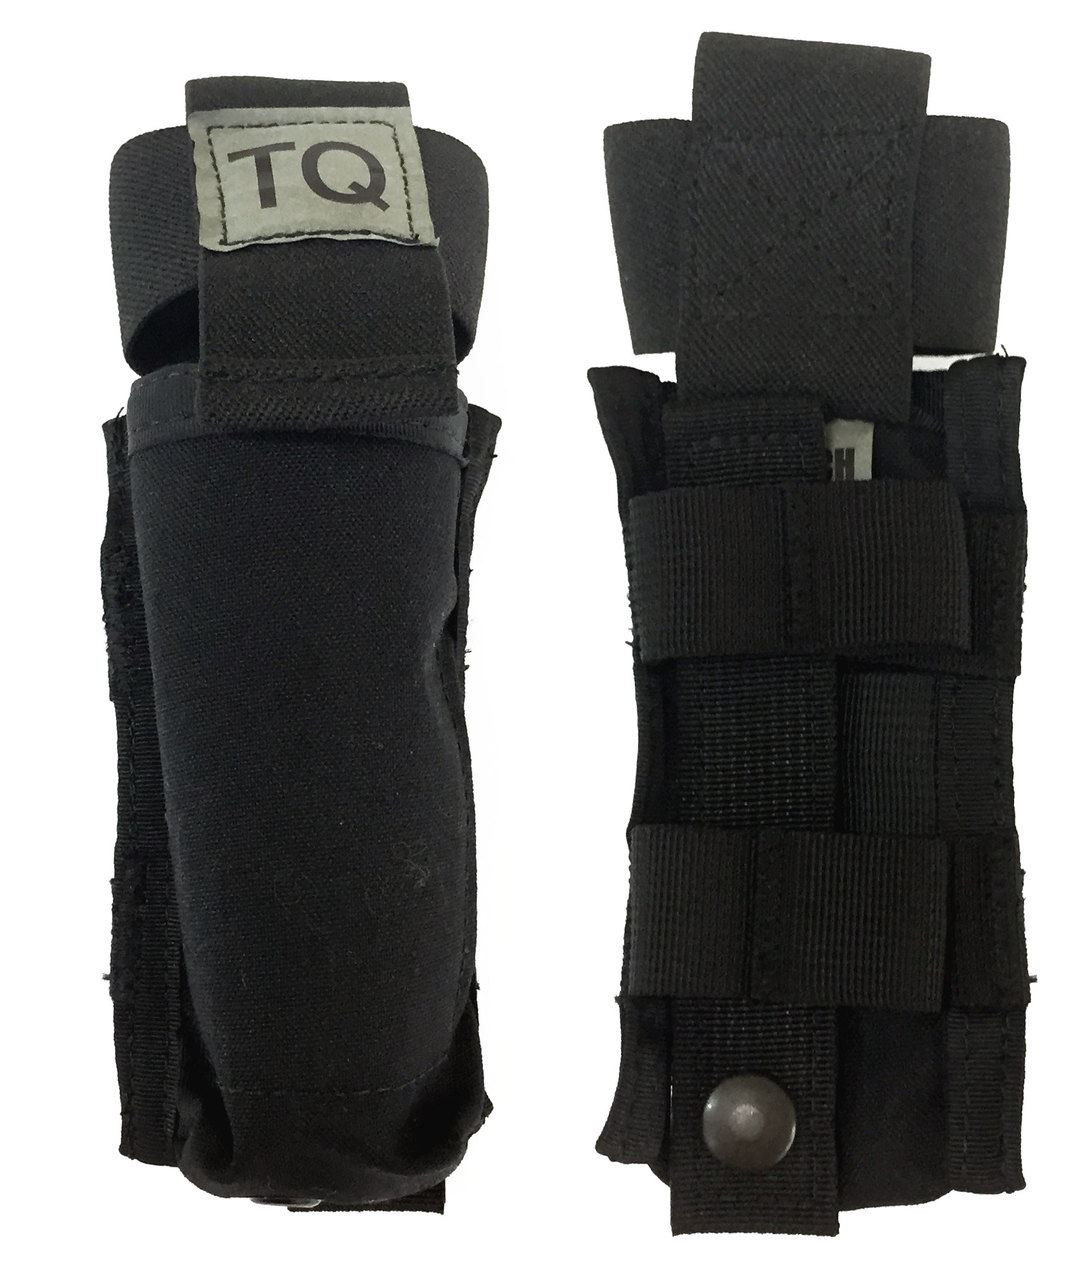 Tactical MOLLE Rigid Application Rescue Bandage Storage Pouch Open Top Carrier